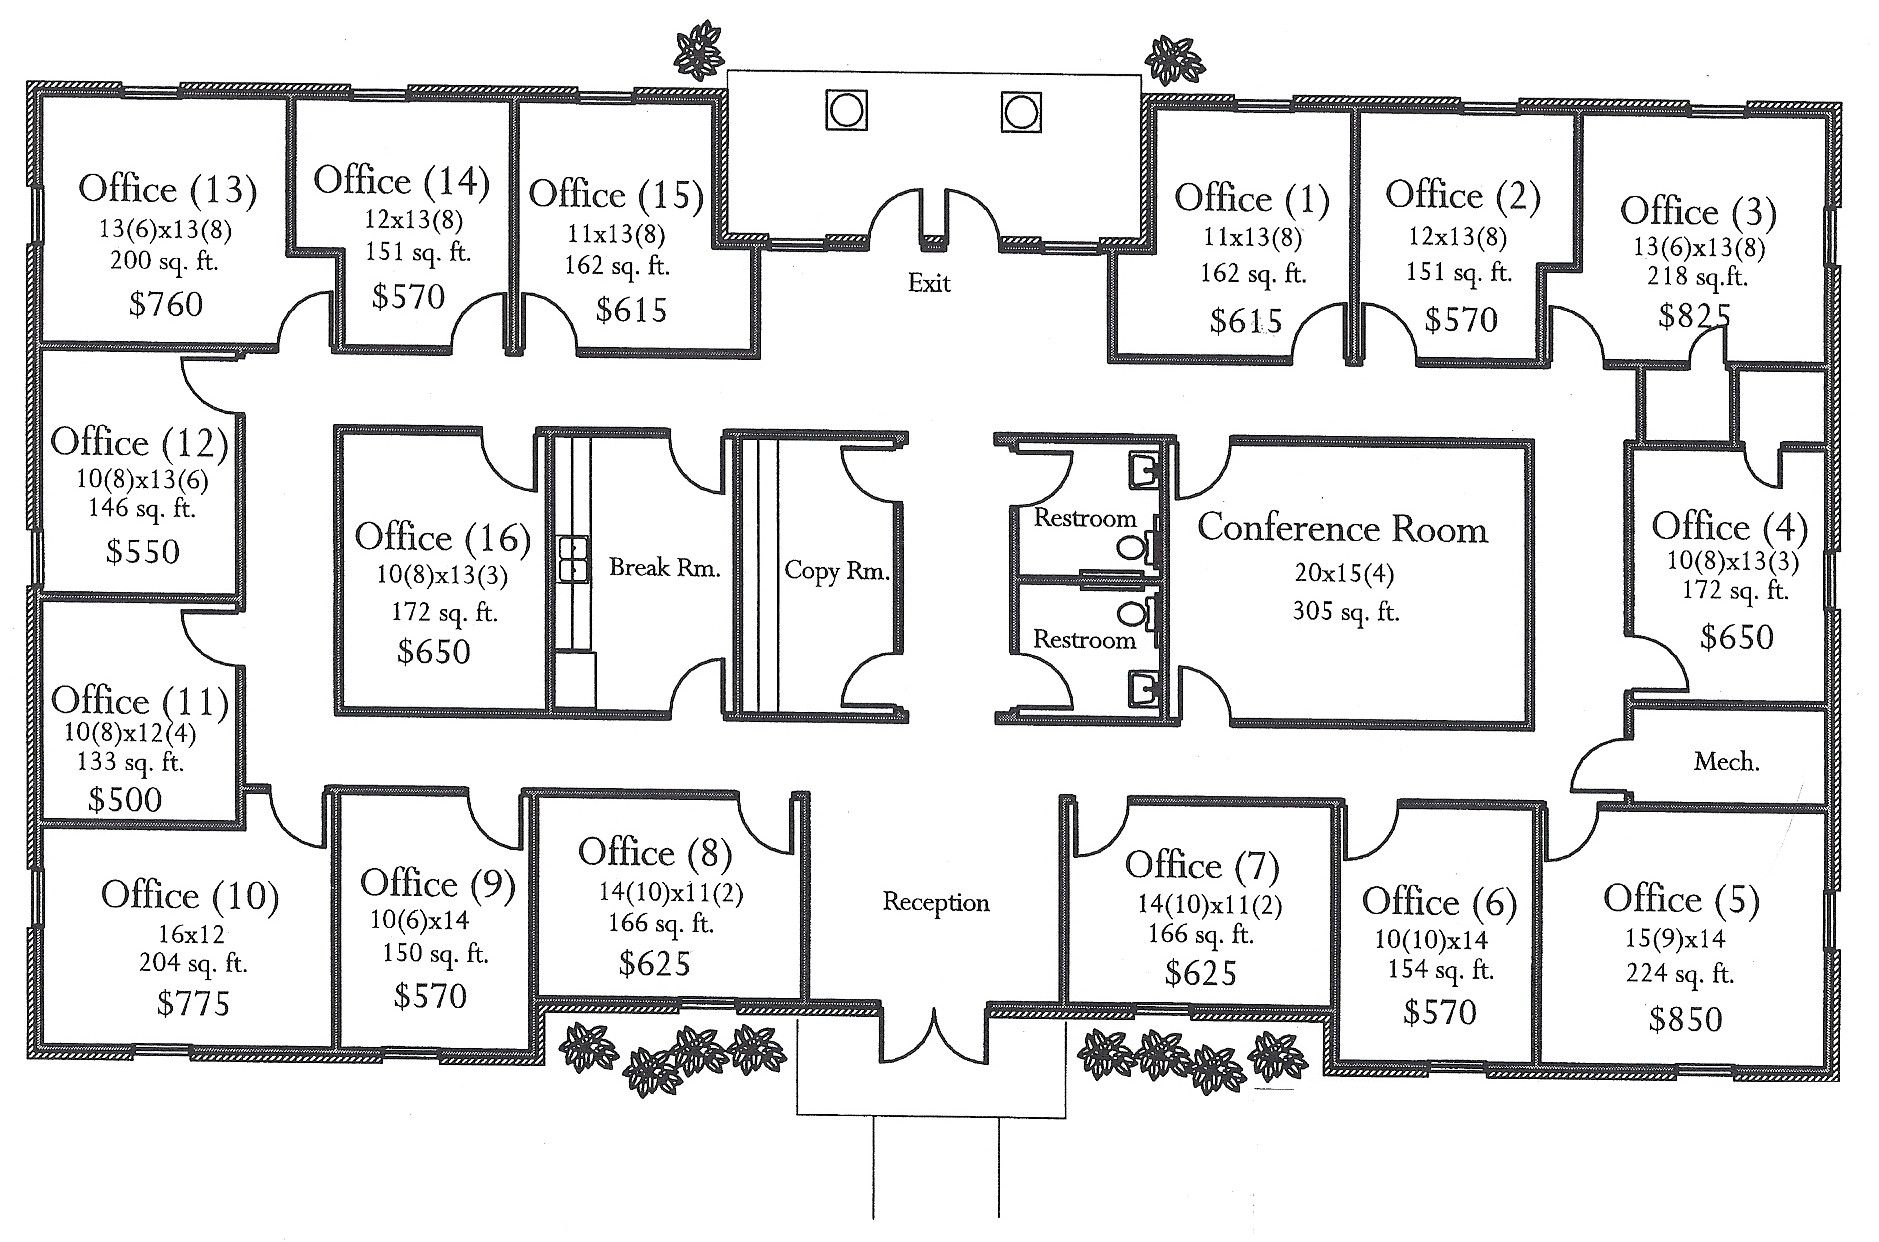 Floor plan for small medical office evstudio architect for Commercial floor plan designer